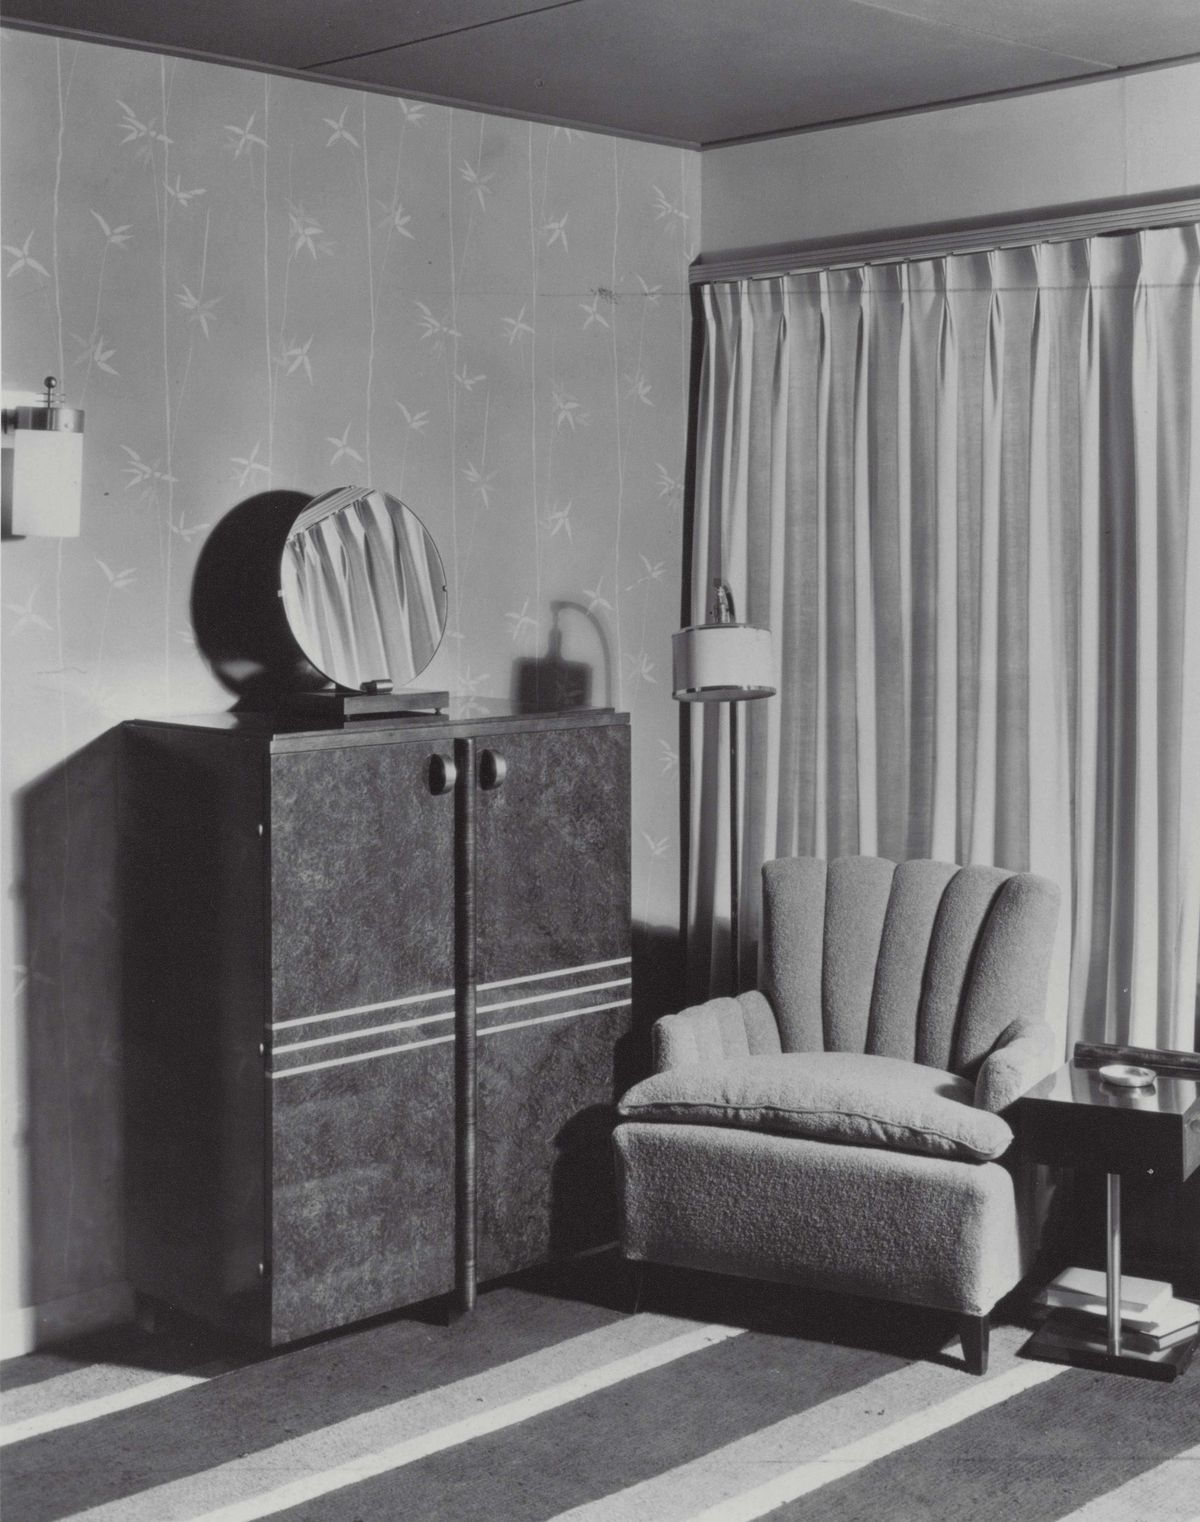 A vintage photograph of the bedroom in the Herman Miller Design for Living House. There is an armchair, dresser, and a window with drapes.